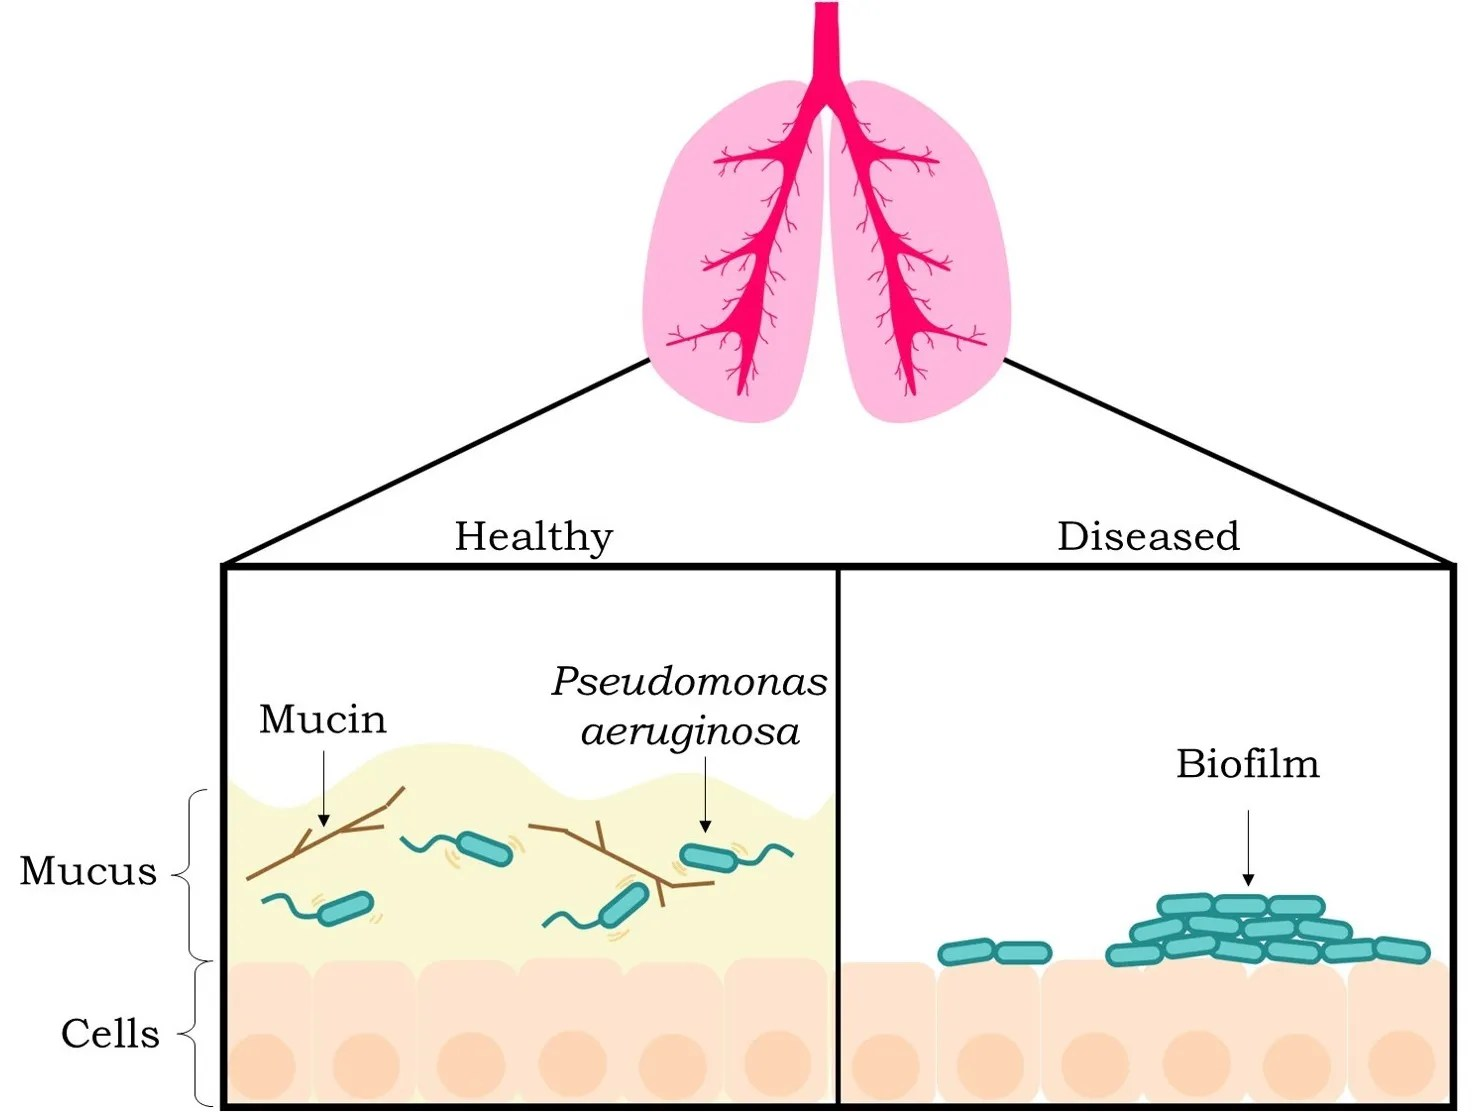 hight resolution of figure 2 mucus disrupts biofilm formation in healthy individuals the left box the bacterium p aeruginosa blue cylindrical objects with tails can